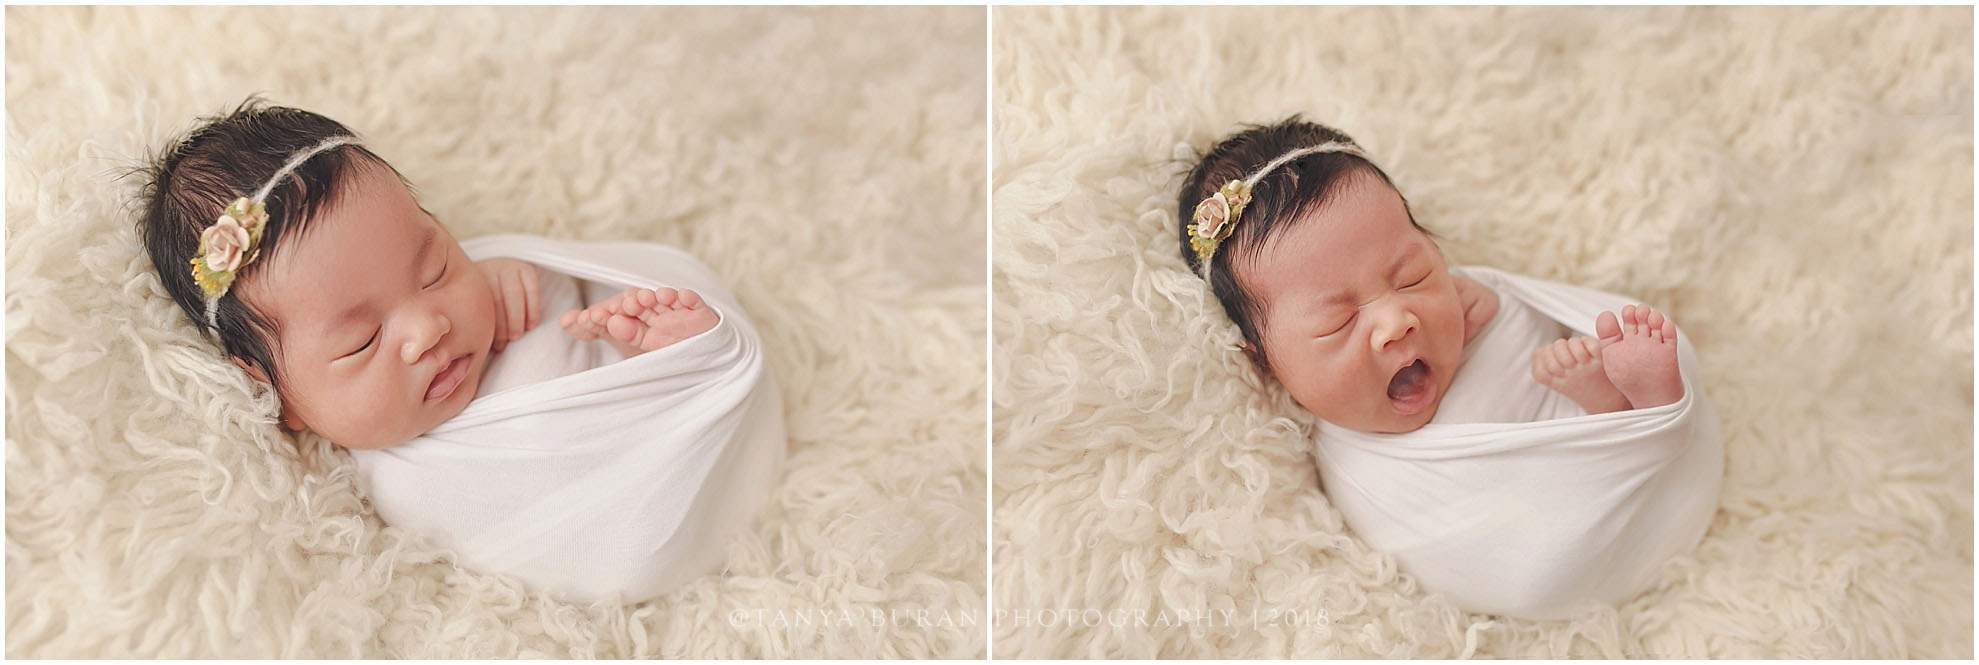 Newborn session lily 1 month old jersey city newborn photographer tanya buran photography